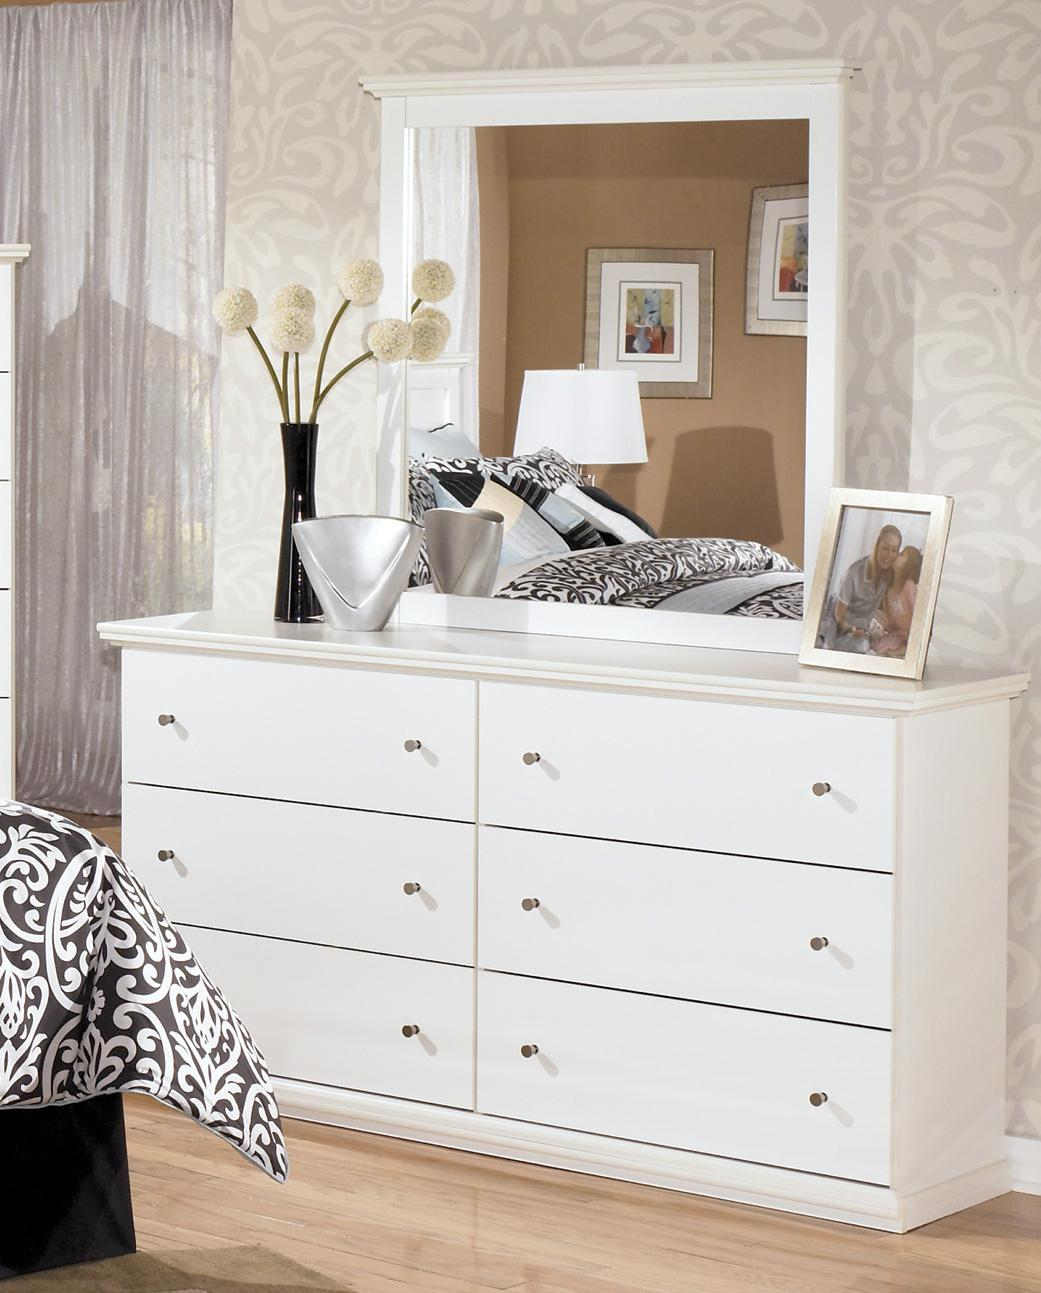 Signature Design by Ashley Bostwick Shoals Dresser & Mirror - Item Number: B139-31+36